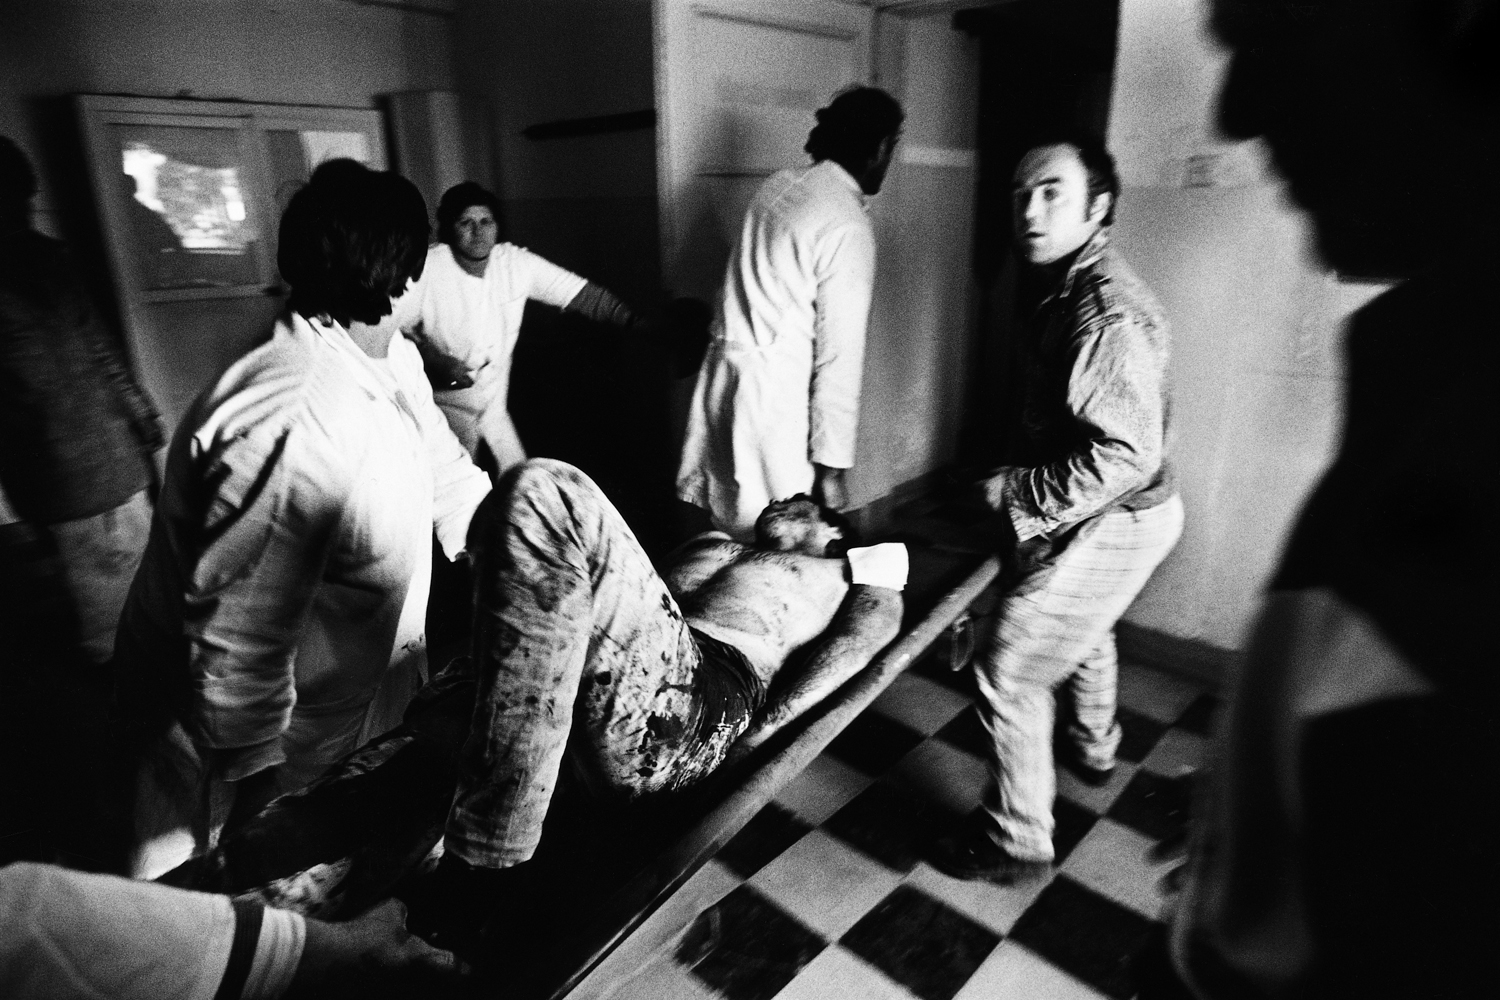 A wounded rebel is brought into the hospital in Vlora, Albania. He was hit in a short exchange of gunfire between government forces and rebels near the bridge between Vier and Vlora.                                                                                              (WPP 1st prize, People in the News stories, 1997)